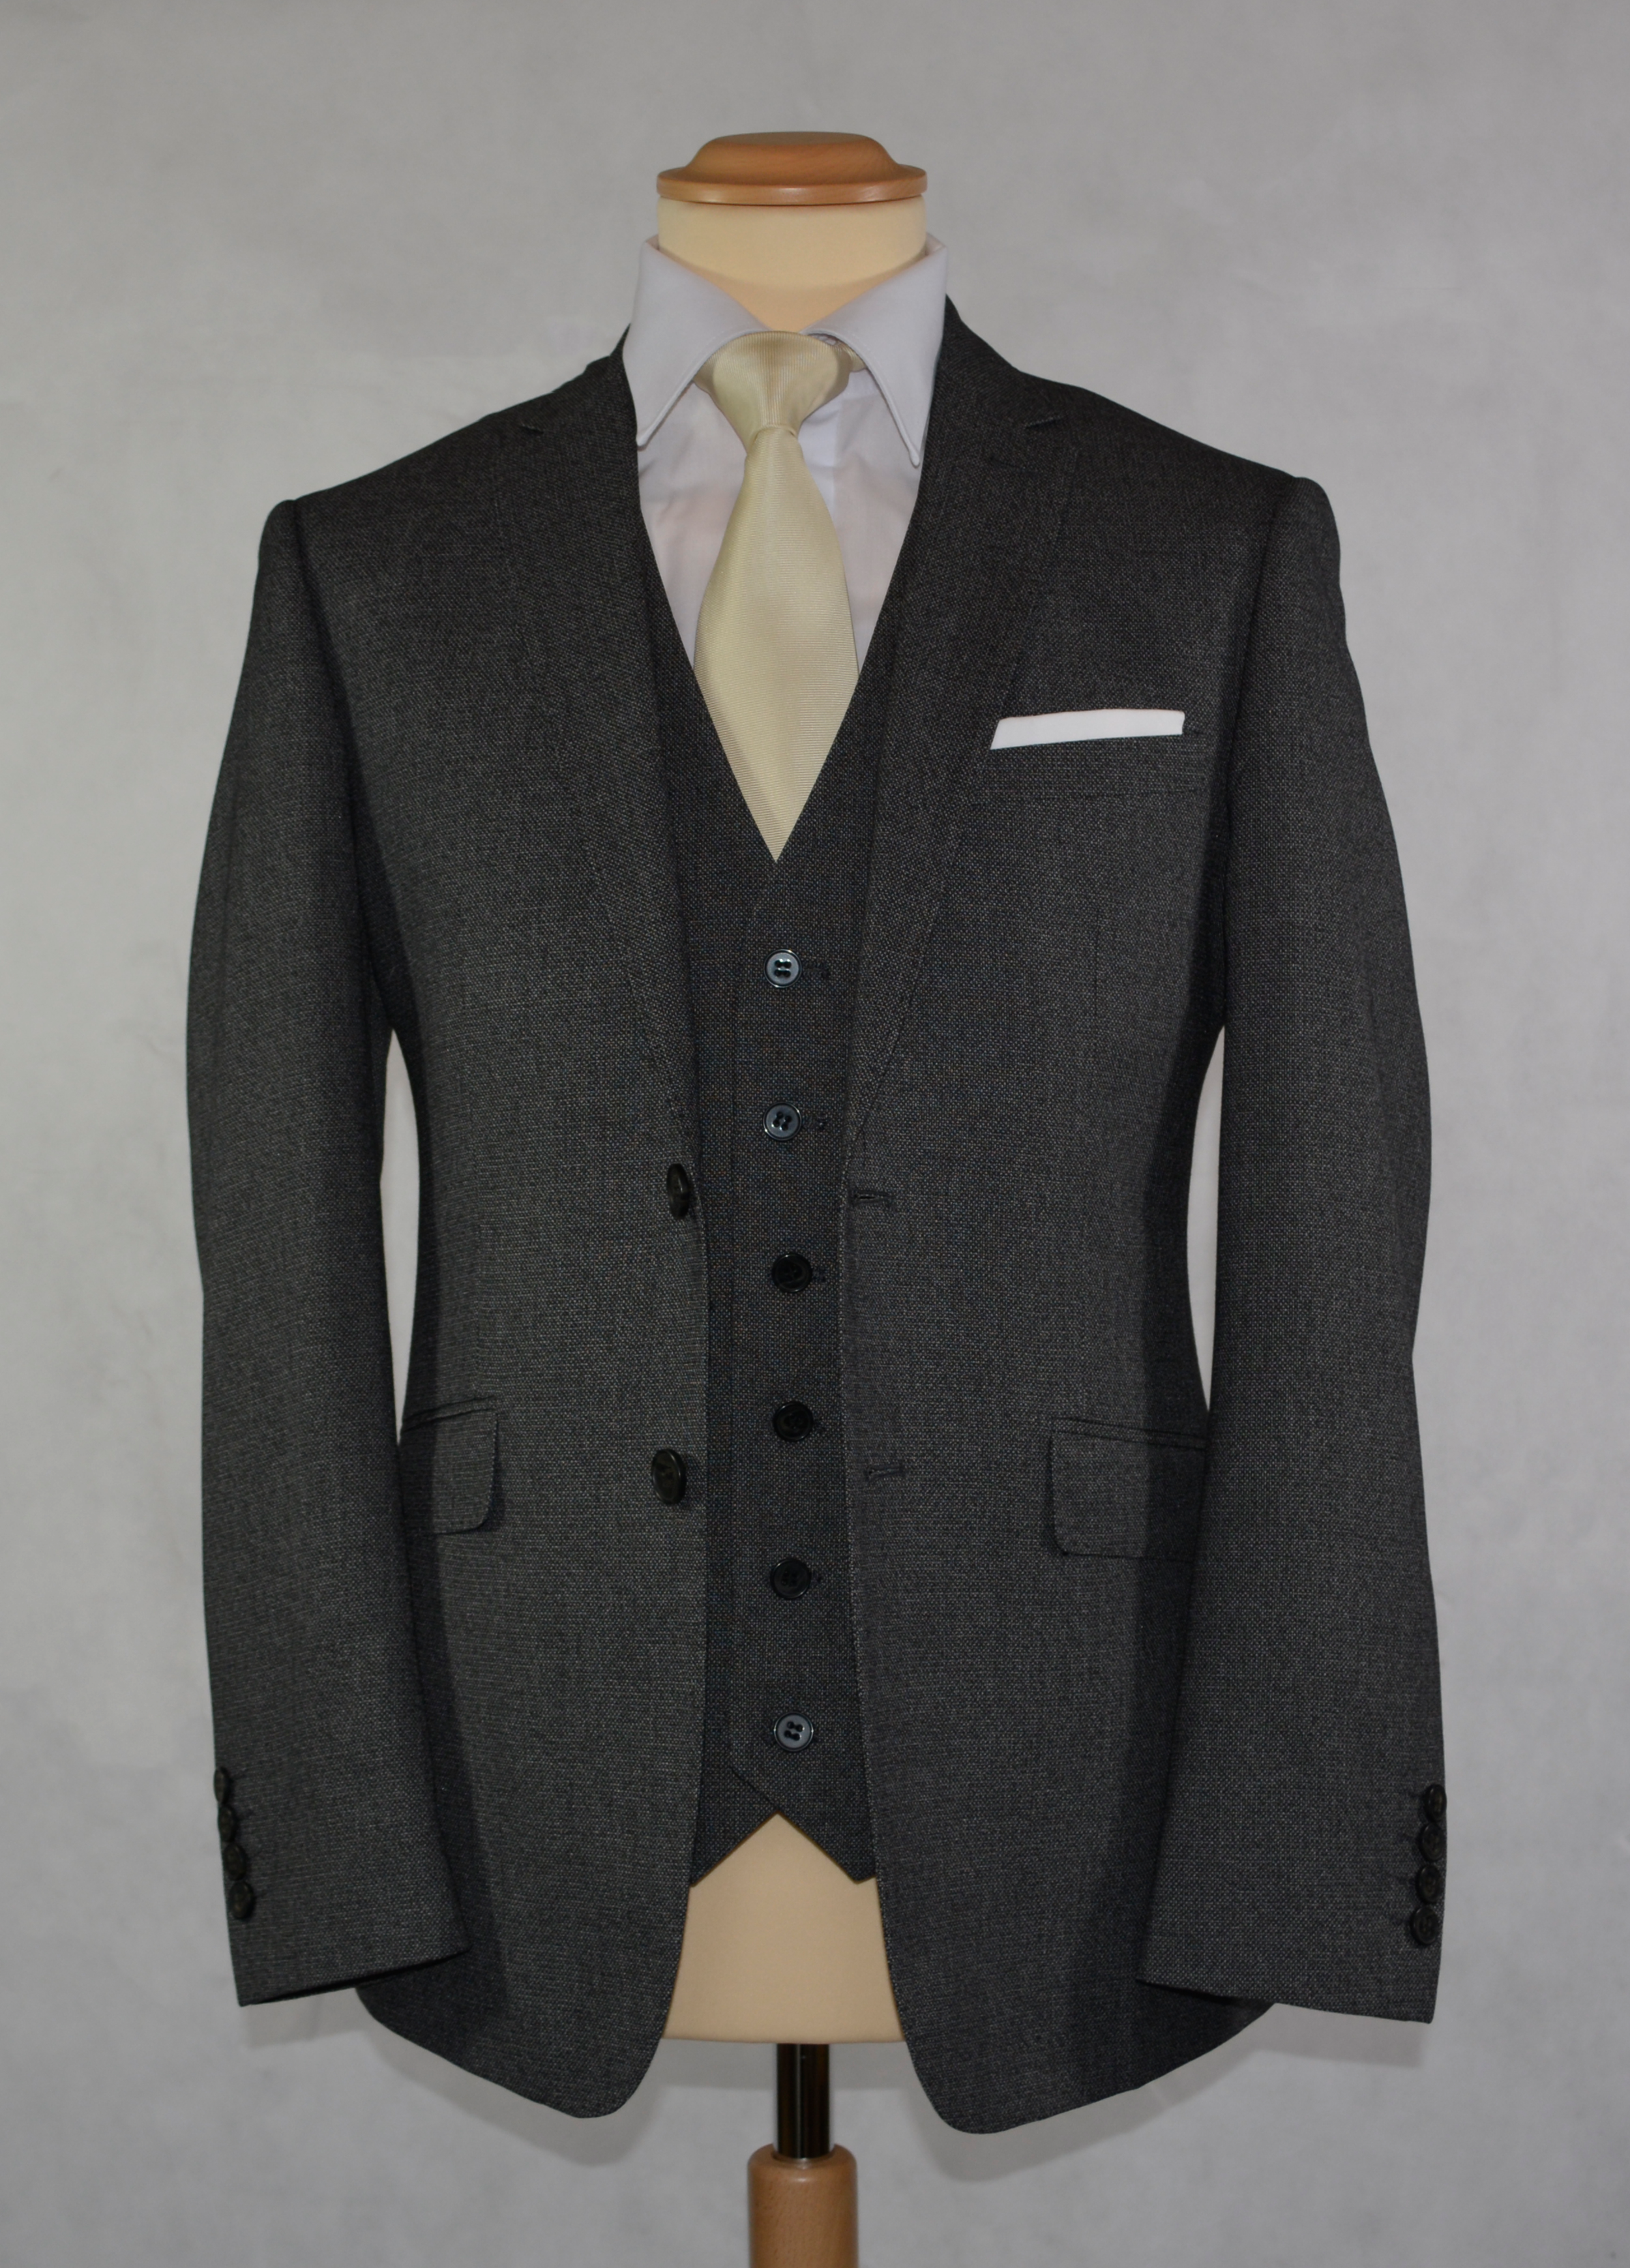 Charcoal Grey Tweed - Available in a scoop or standard Waistcoat (To buy only)